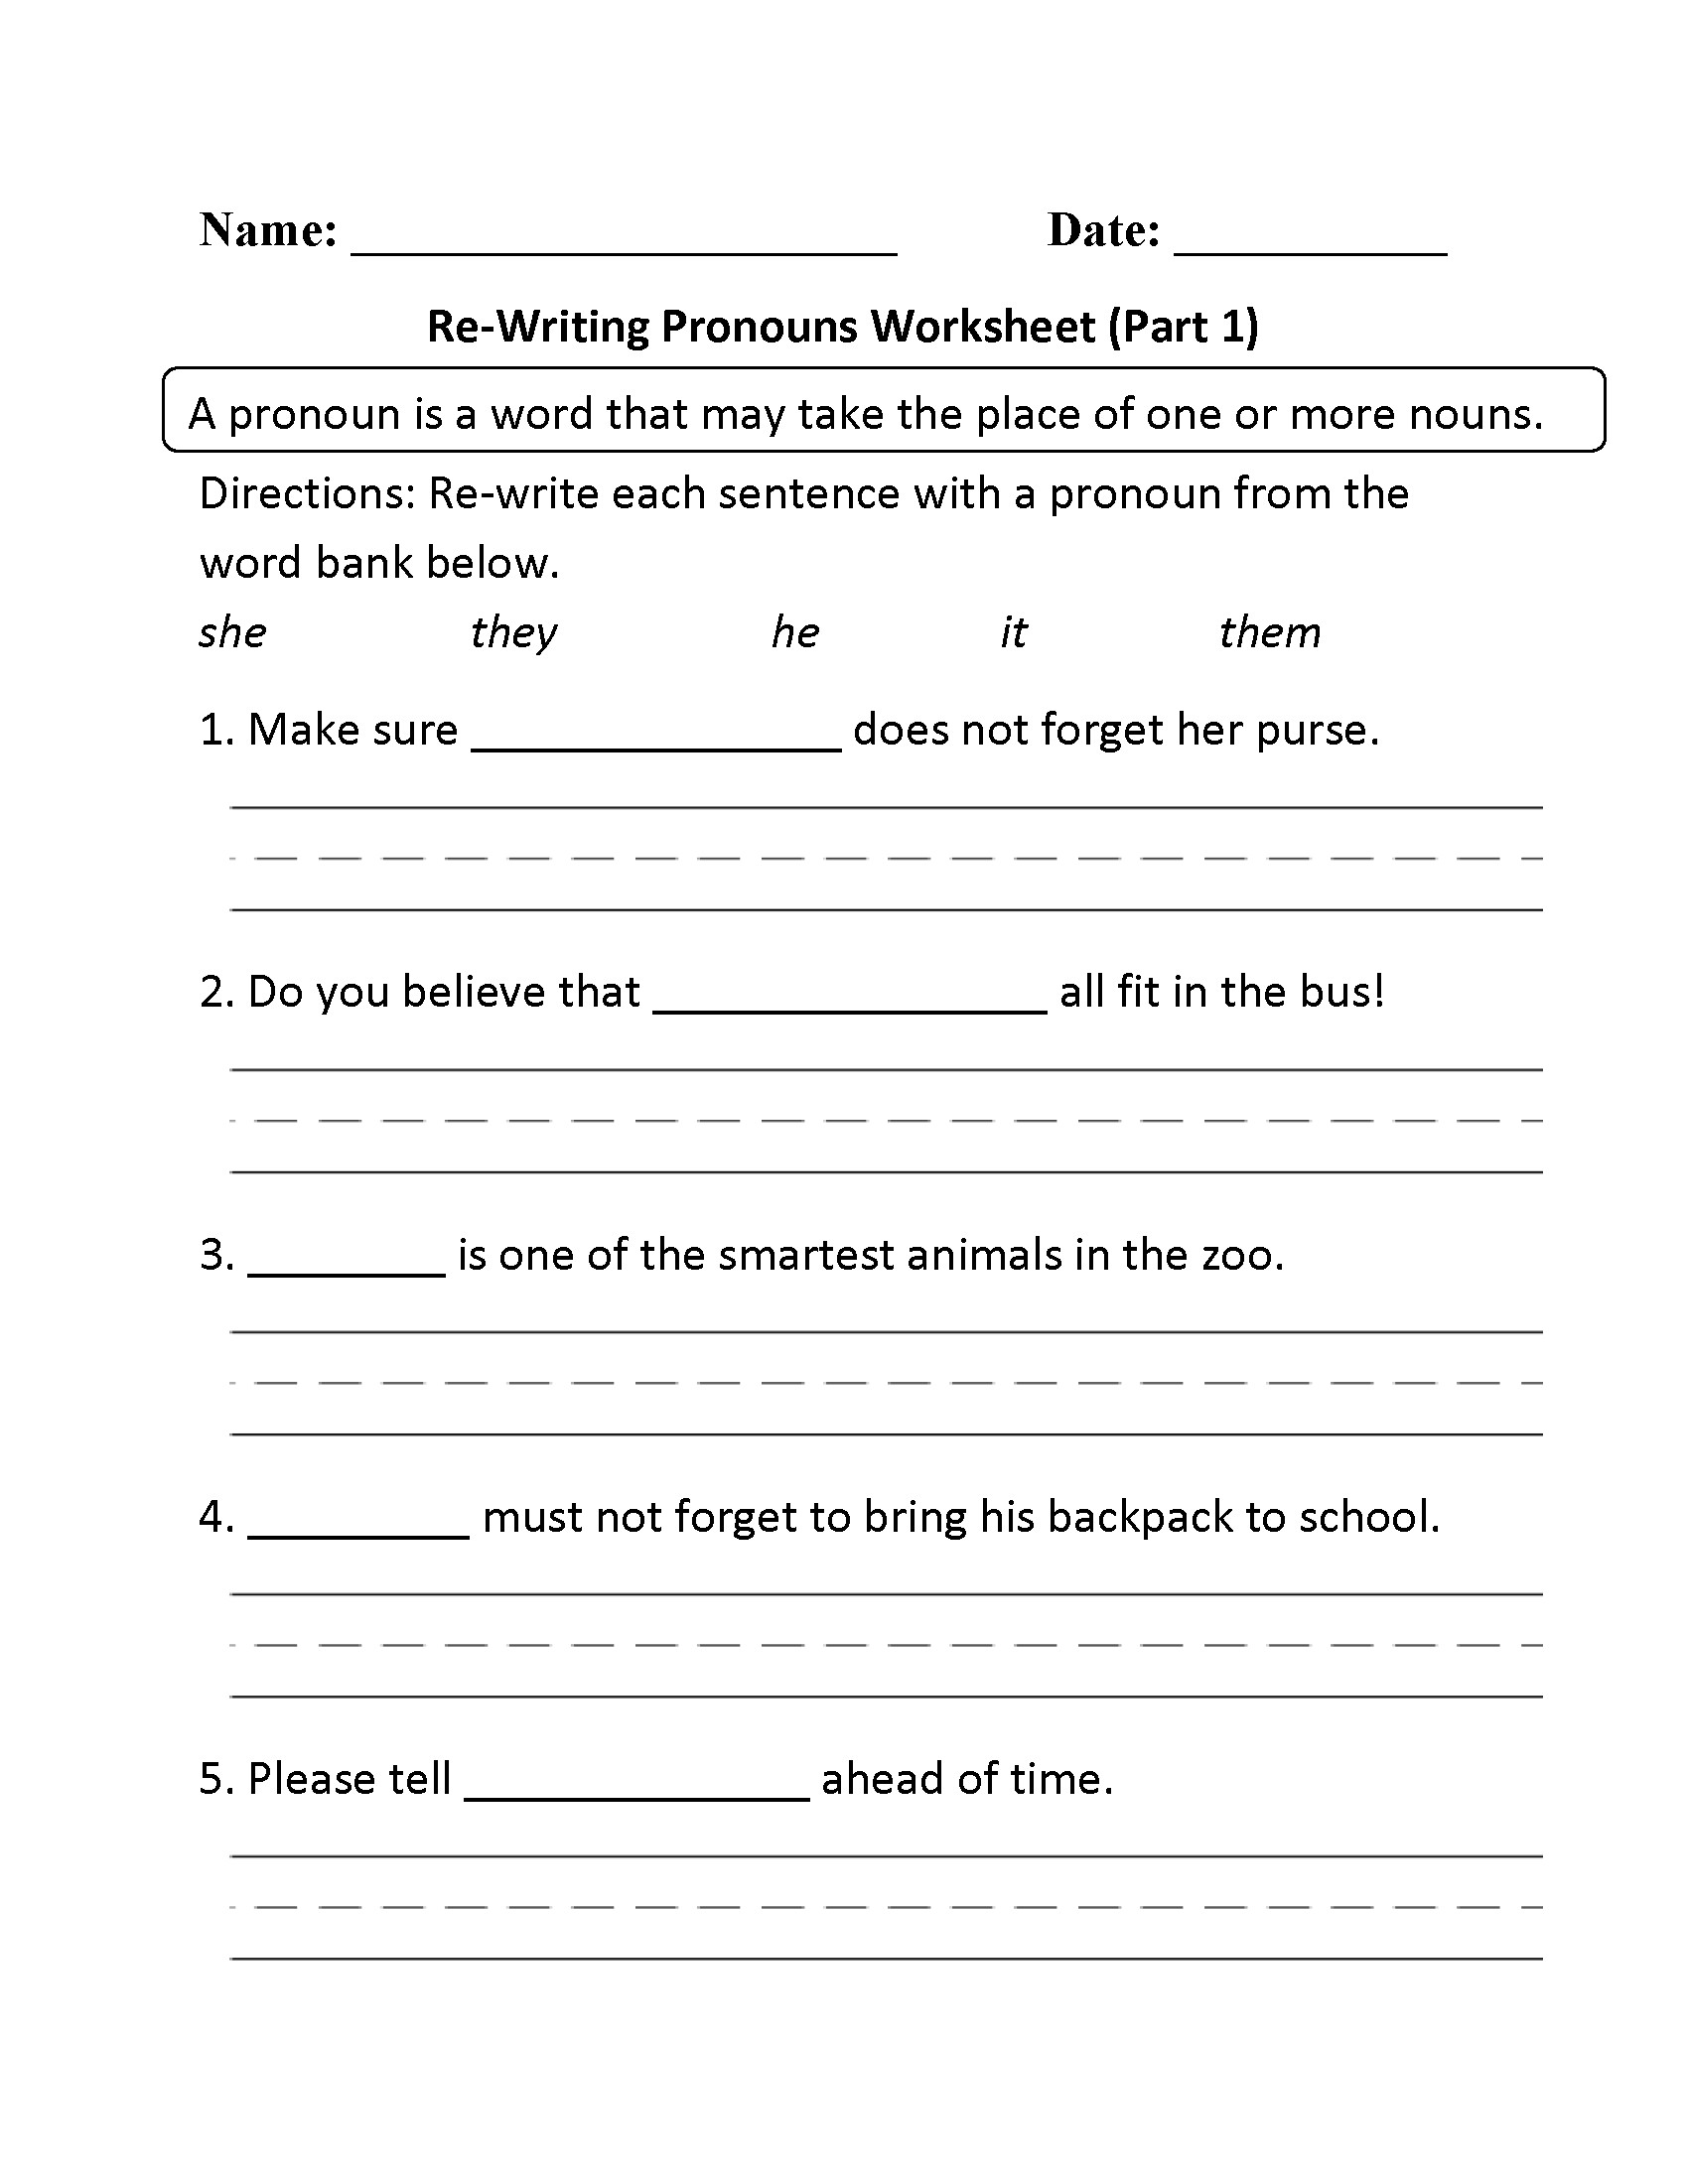 Second Grade Pronouns Worksheet Free Pronoun Worksheet for 2nd Grade